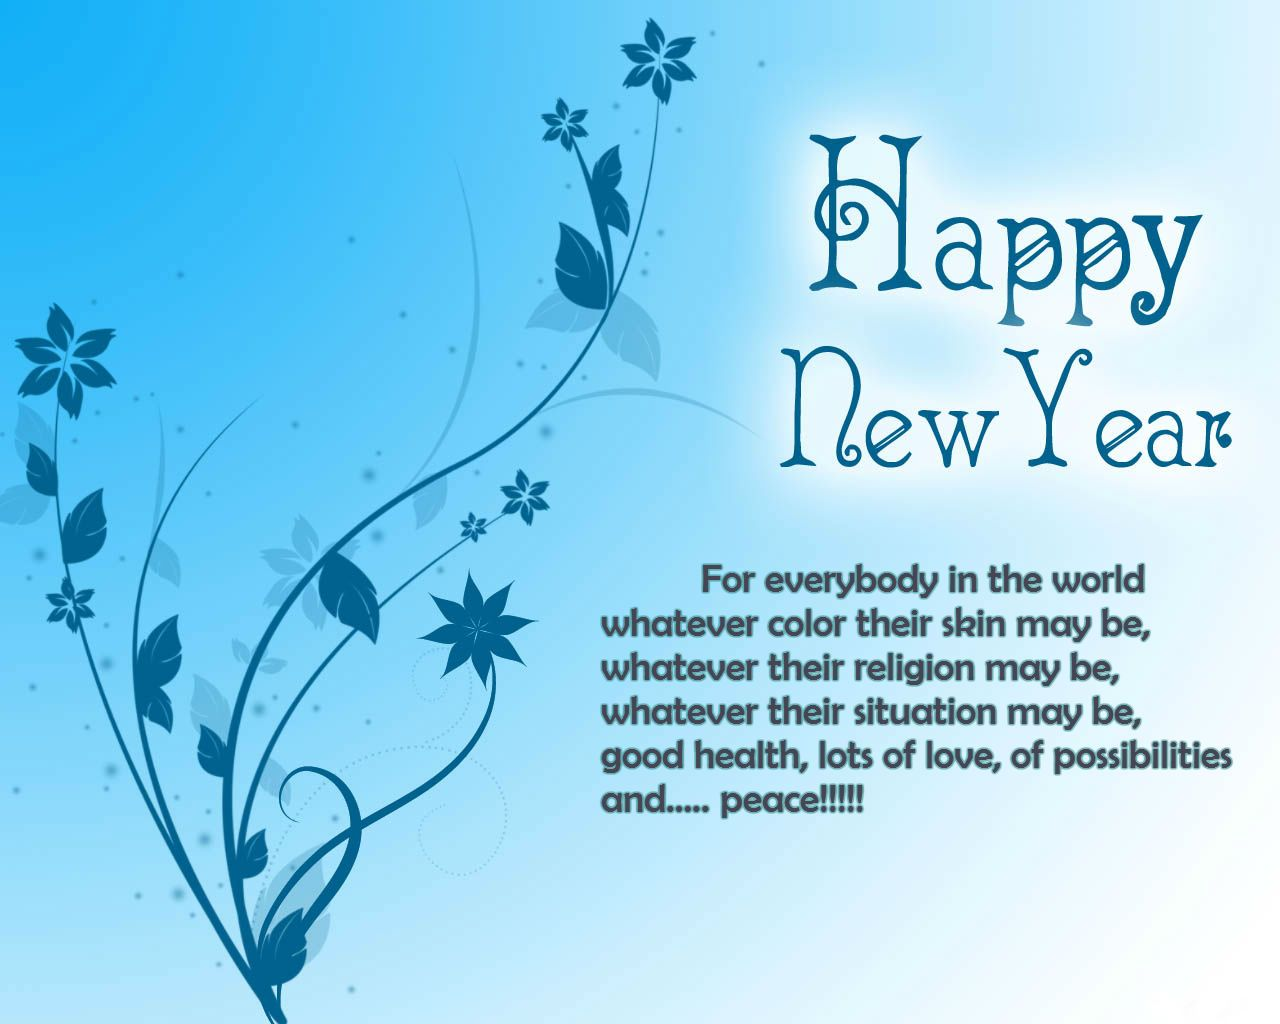 Happy new year 2013 wishes greeting card images others others how to happy new year 2013 wishes greeting card images others others how to free new years greetings cards jpg 2013 m4hsunfo